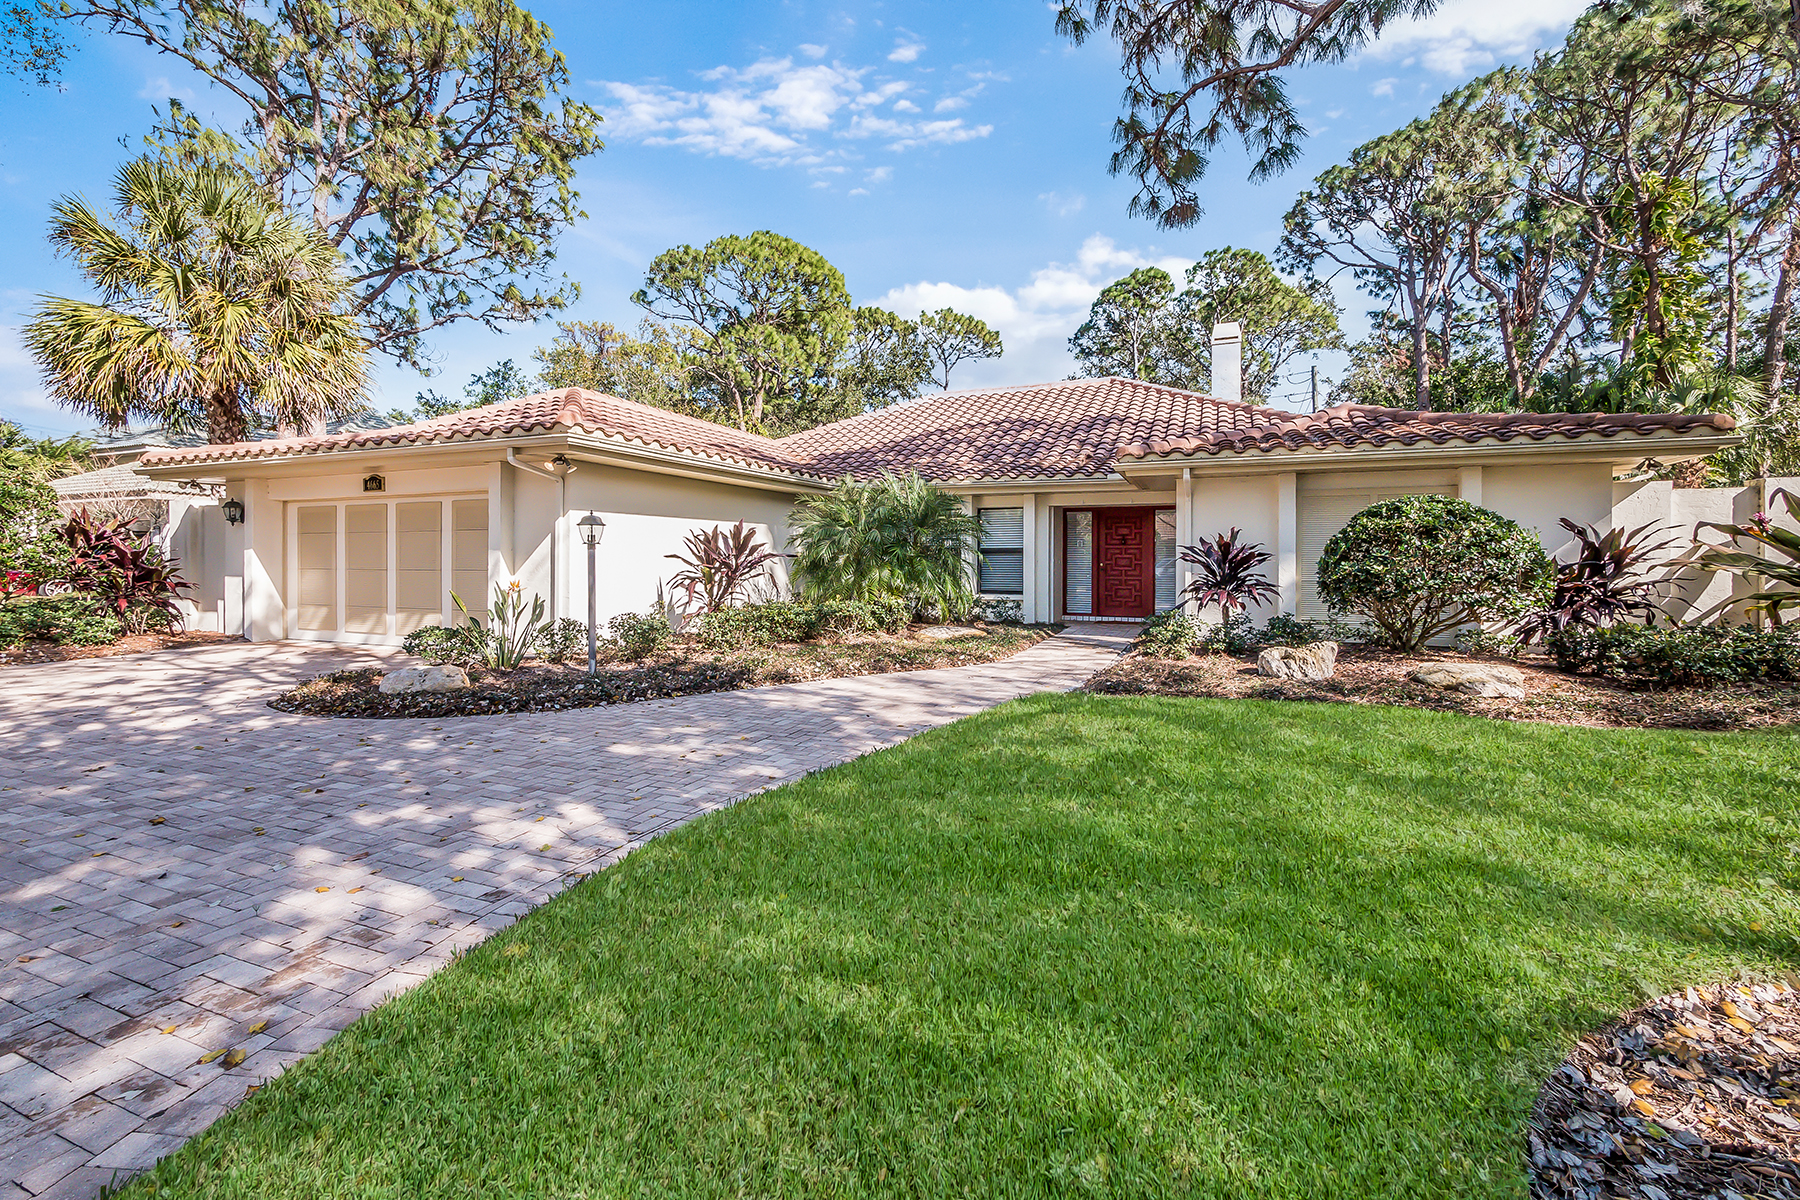 واحد منزل الأسرة للـ Sale في THE LANDINGS 4665 Pine Harrier Dr, Sarasota, Florida, 34231 United States